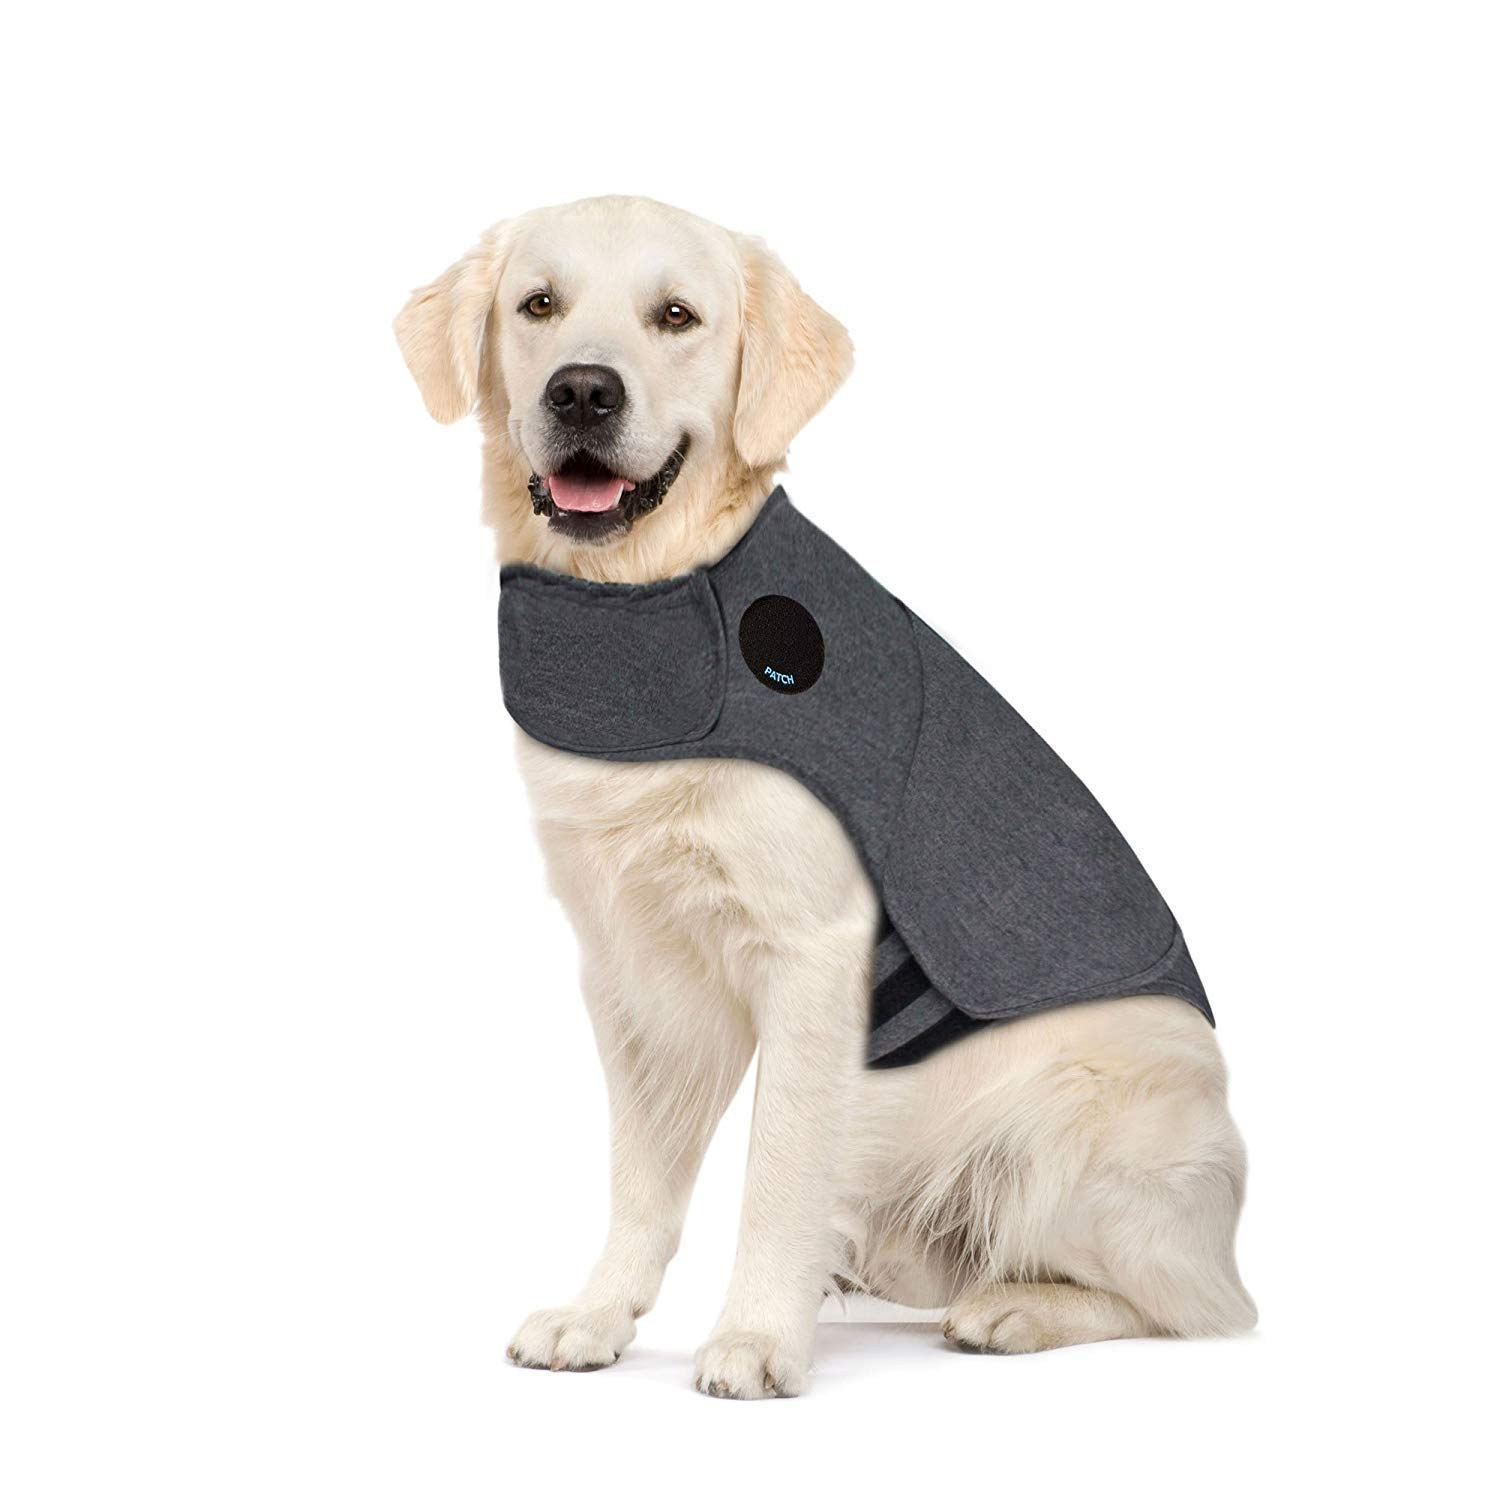 Thunder Dog Anxiety Jacket Anti-Anxiety Shirt Stress Relief Keep Calm Clothes, Heather Gray (XL)